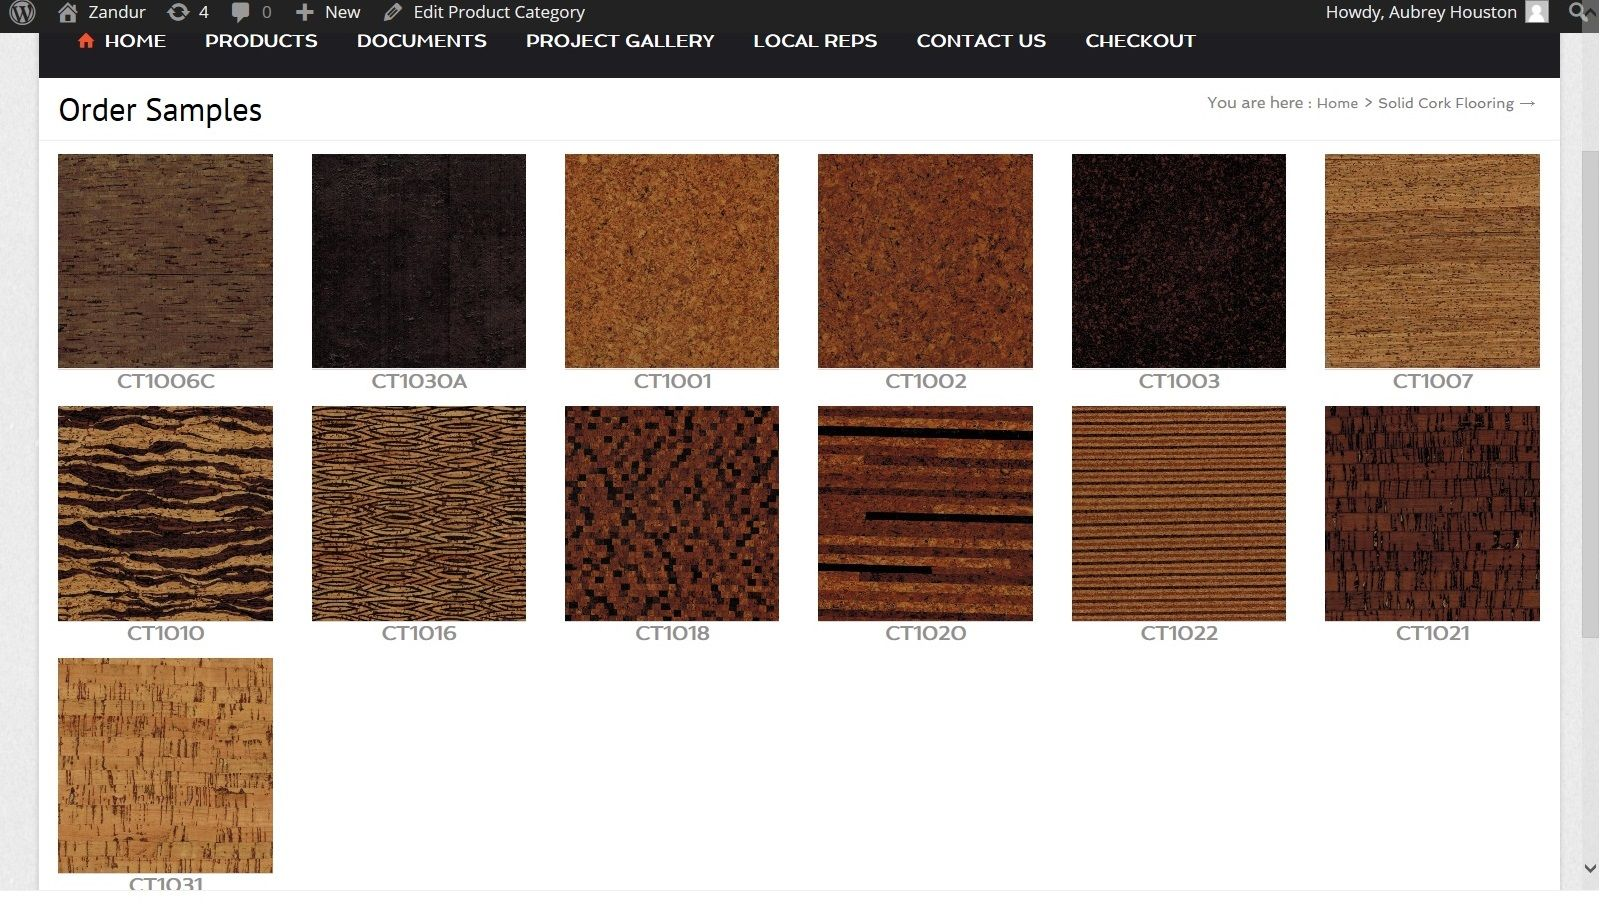 Visit The New Zandur Website To View And Order Samples